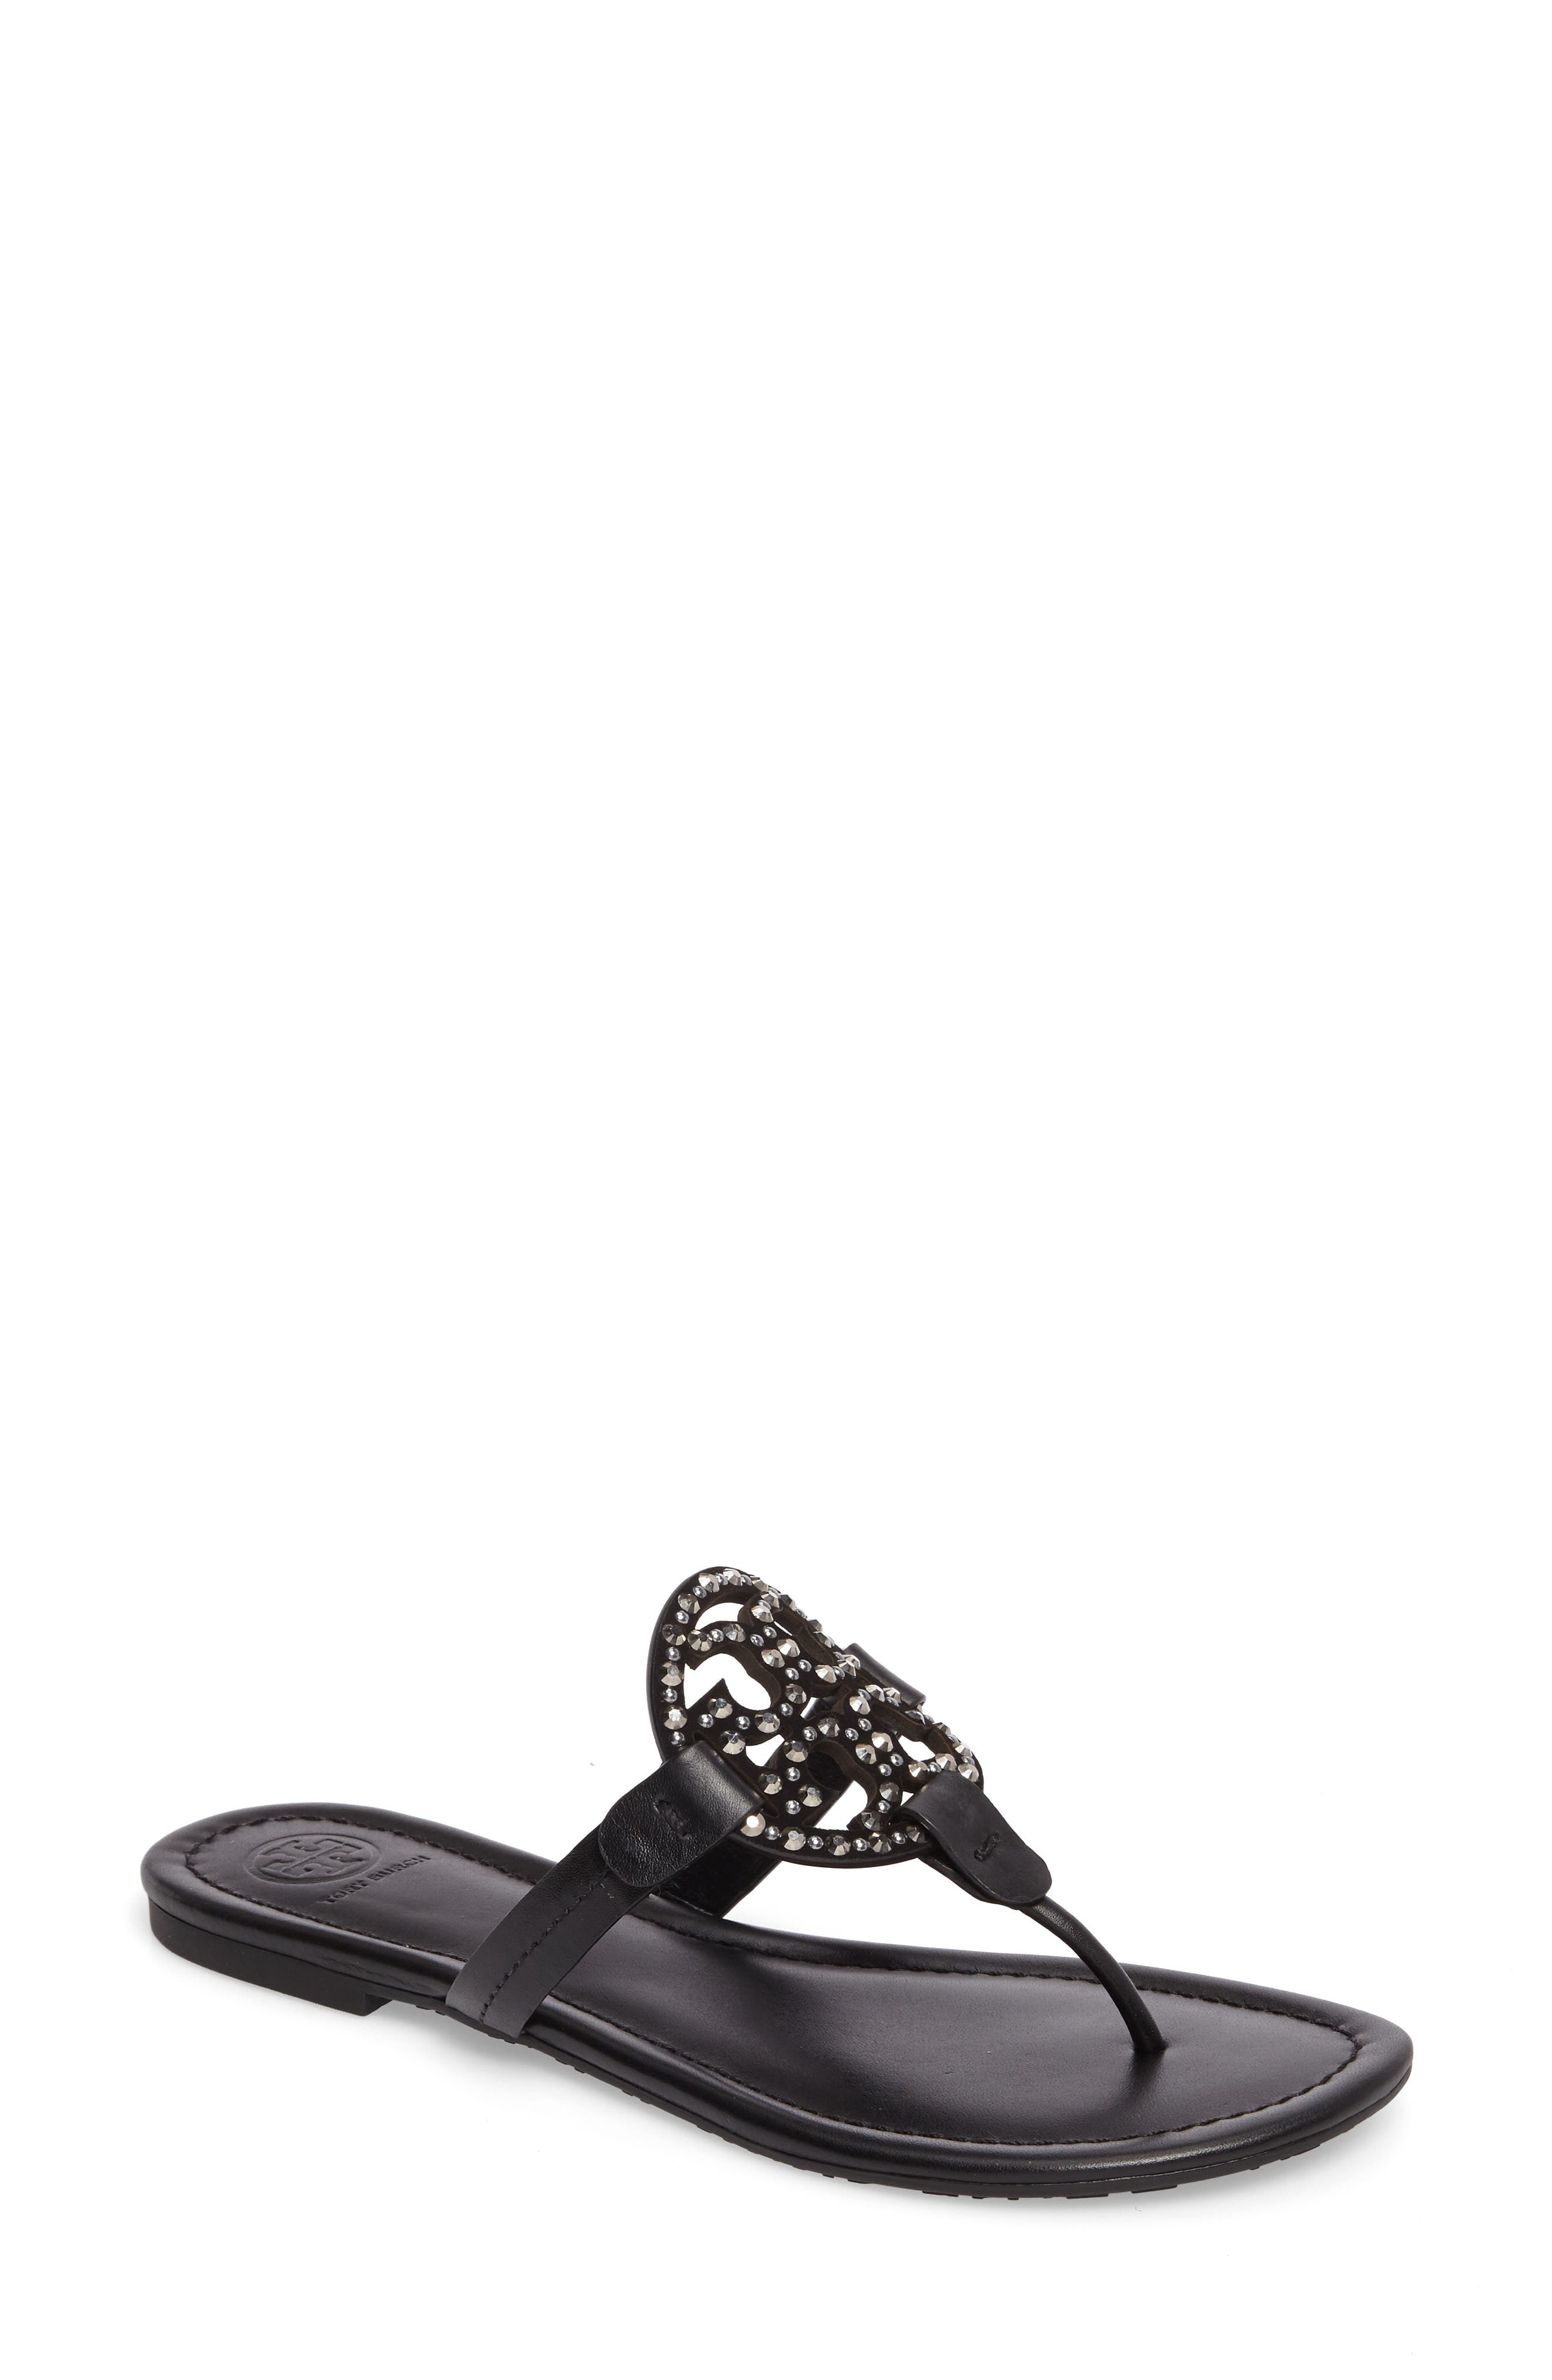 Tory Burch Miller Embellished Sandal (Women)